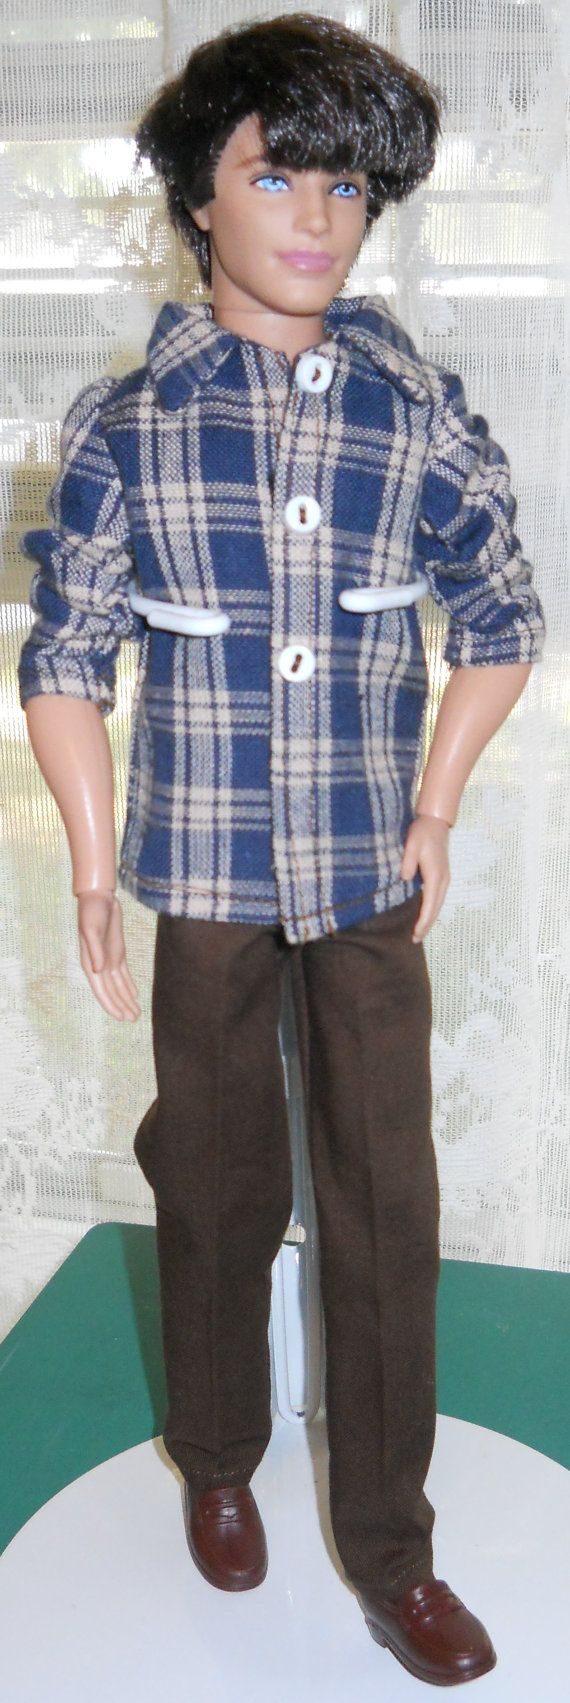 Handmade Ken Plaid Shirt and Brown Pants by AuntieLousCrafts, $9.50